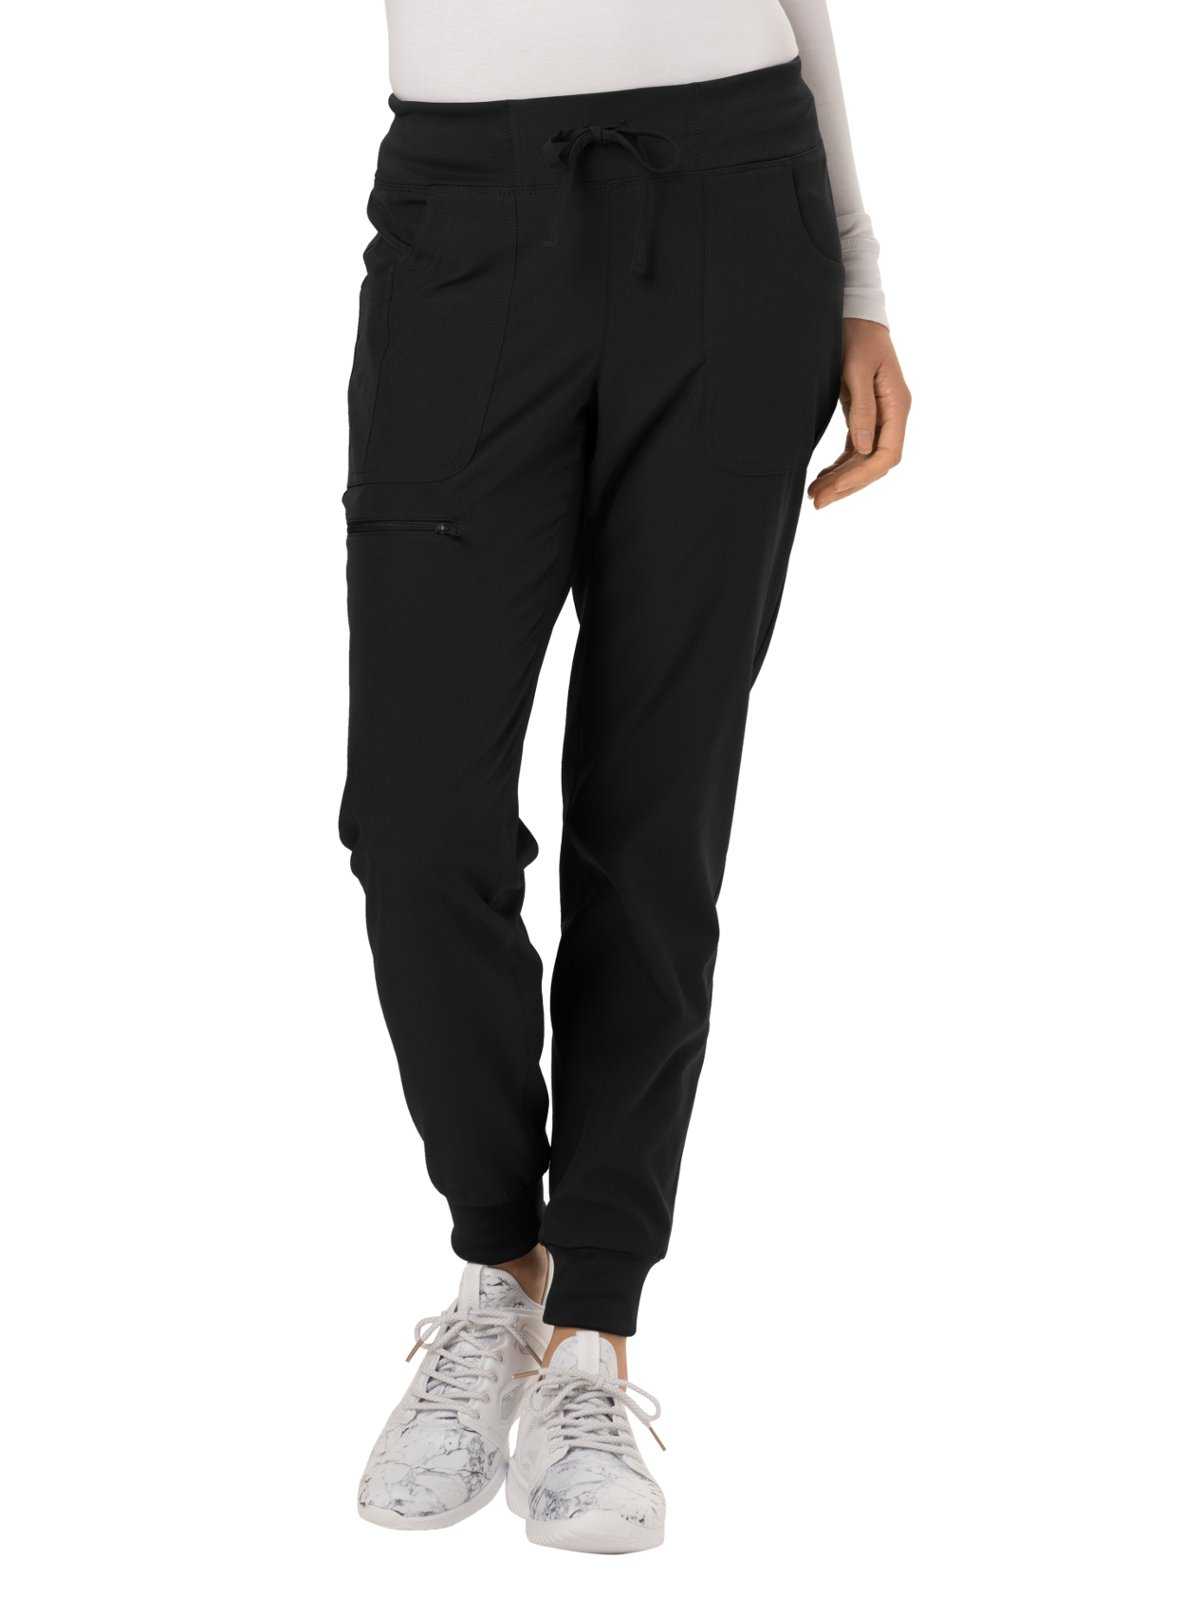 HeartSoul Break On Through by Women's The Jogger Low Rise Tapered Leg Scrub Pant Small Black